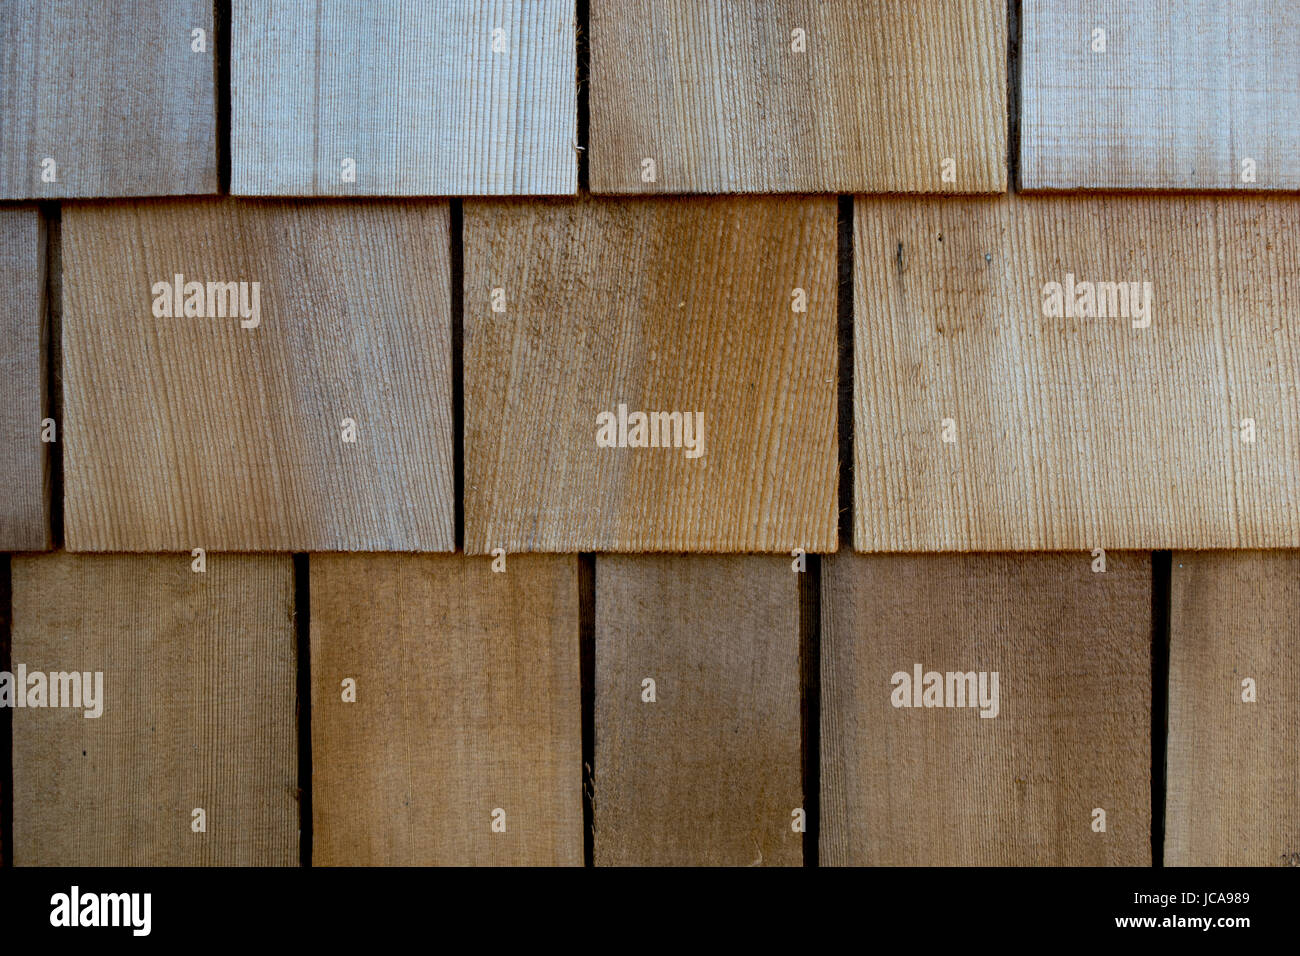 Cedar shakes on the side of a house - Stock Image